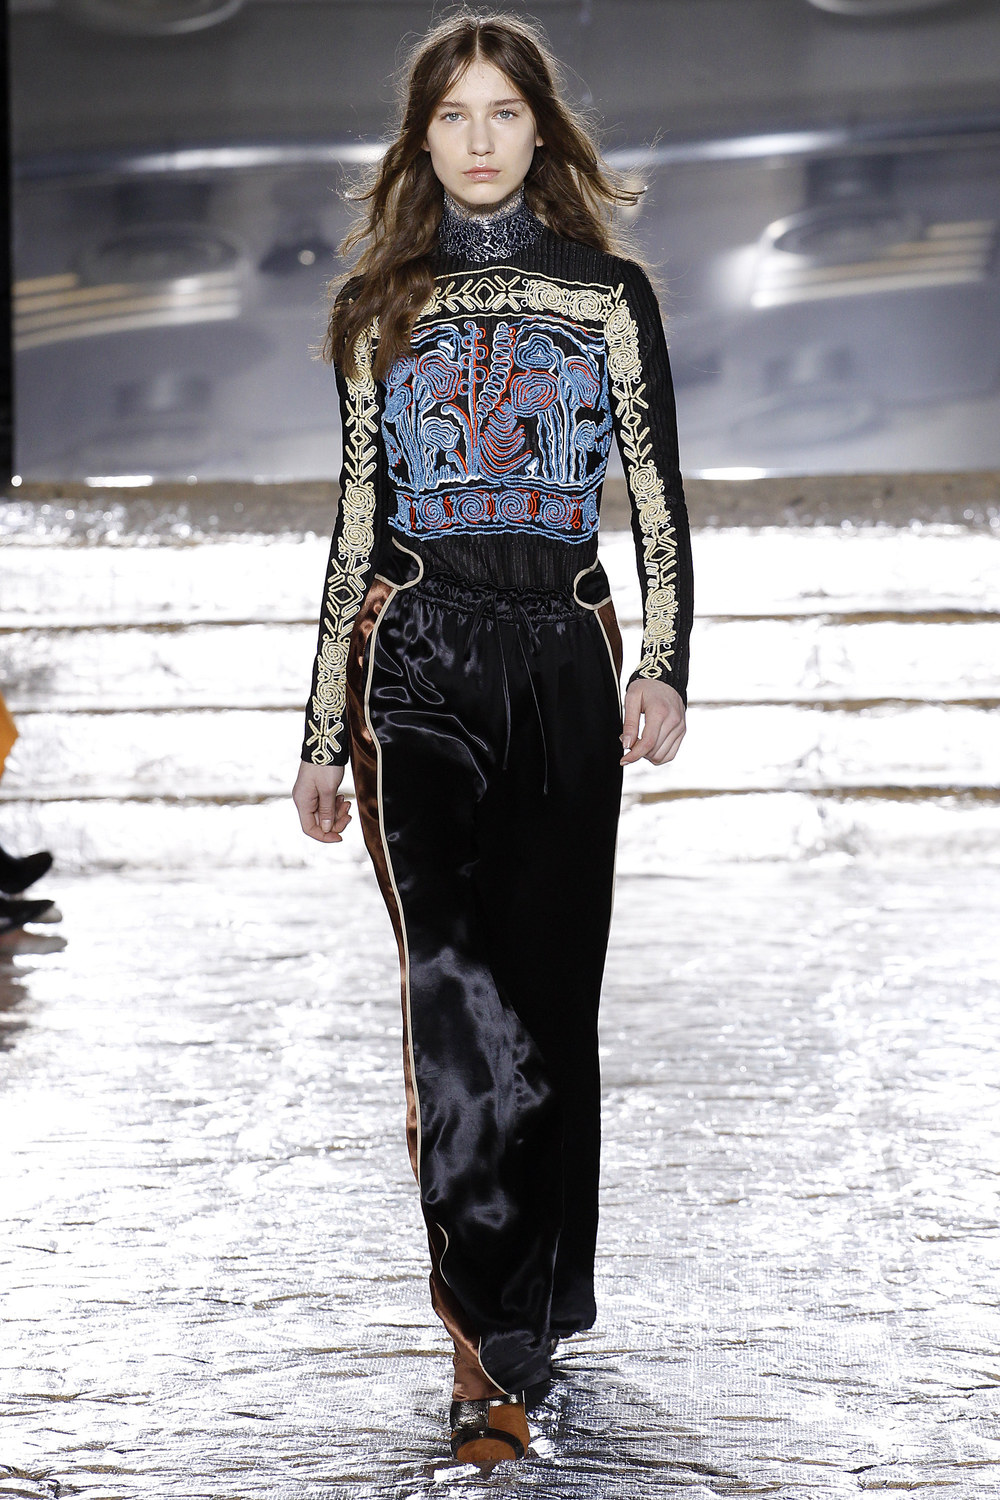 Peter-Pilotto-Autumn-Winter-Fall-2016-London-Fashion-Week-2.jpg